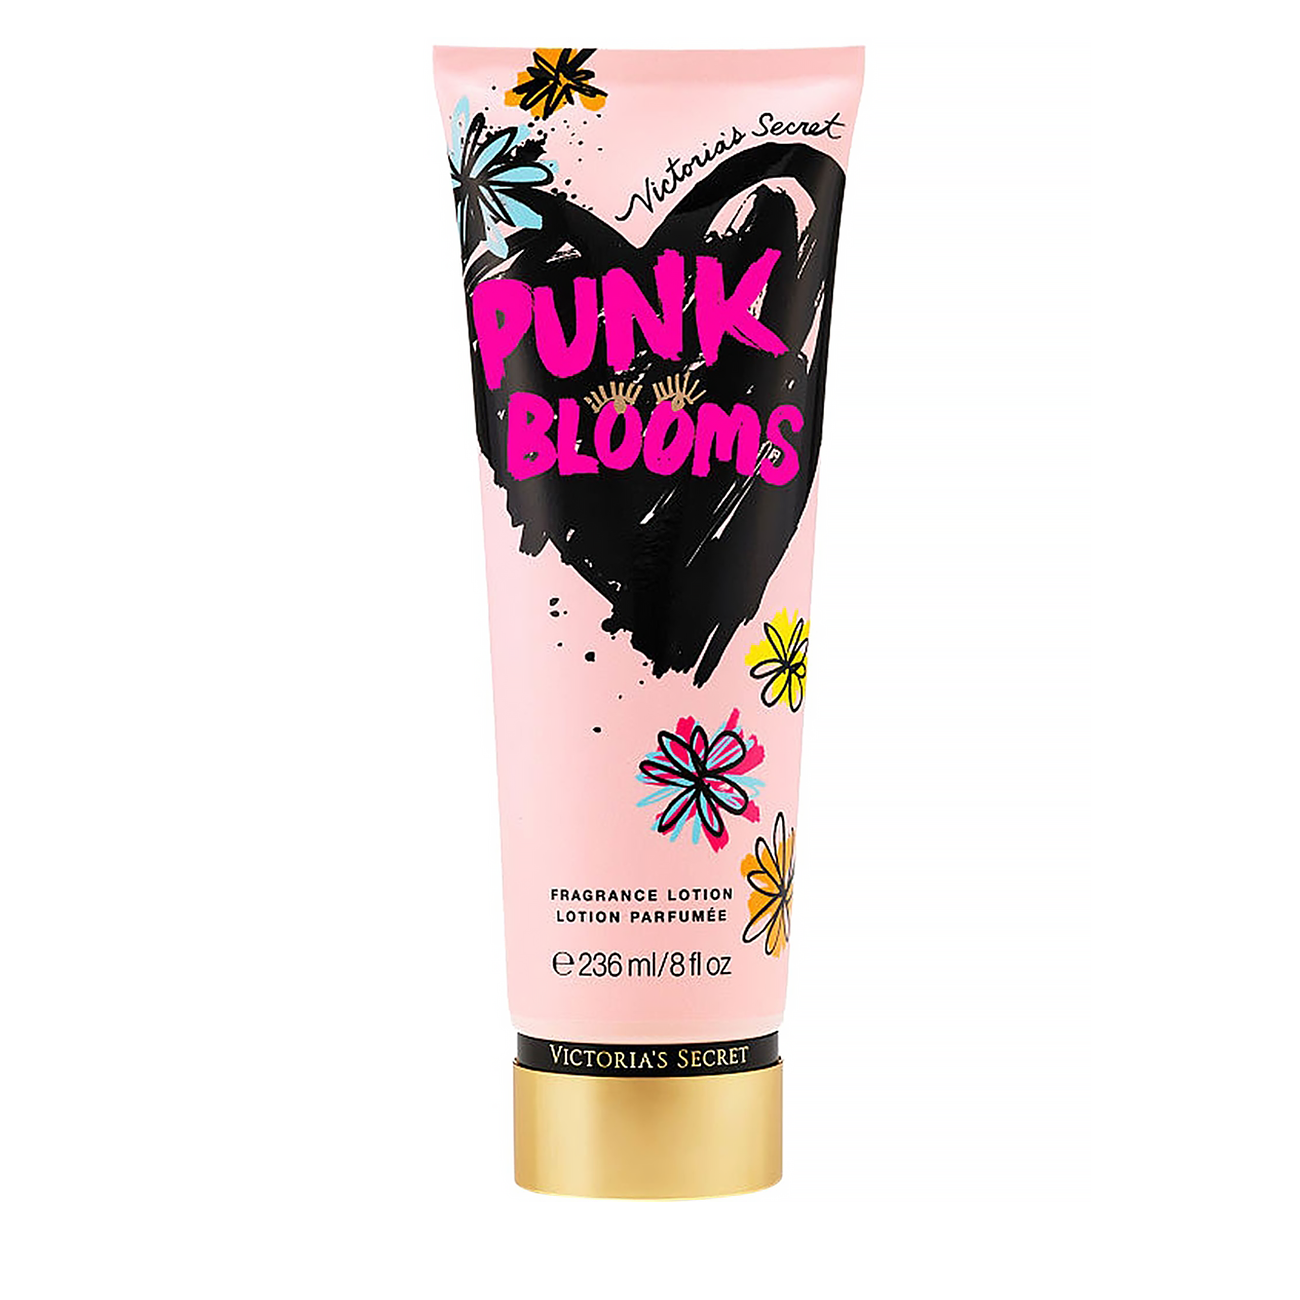 PUNK BLOOMS FRAGRANCE LOTION 236ml